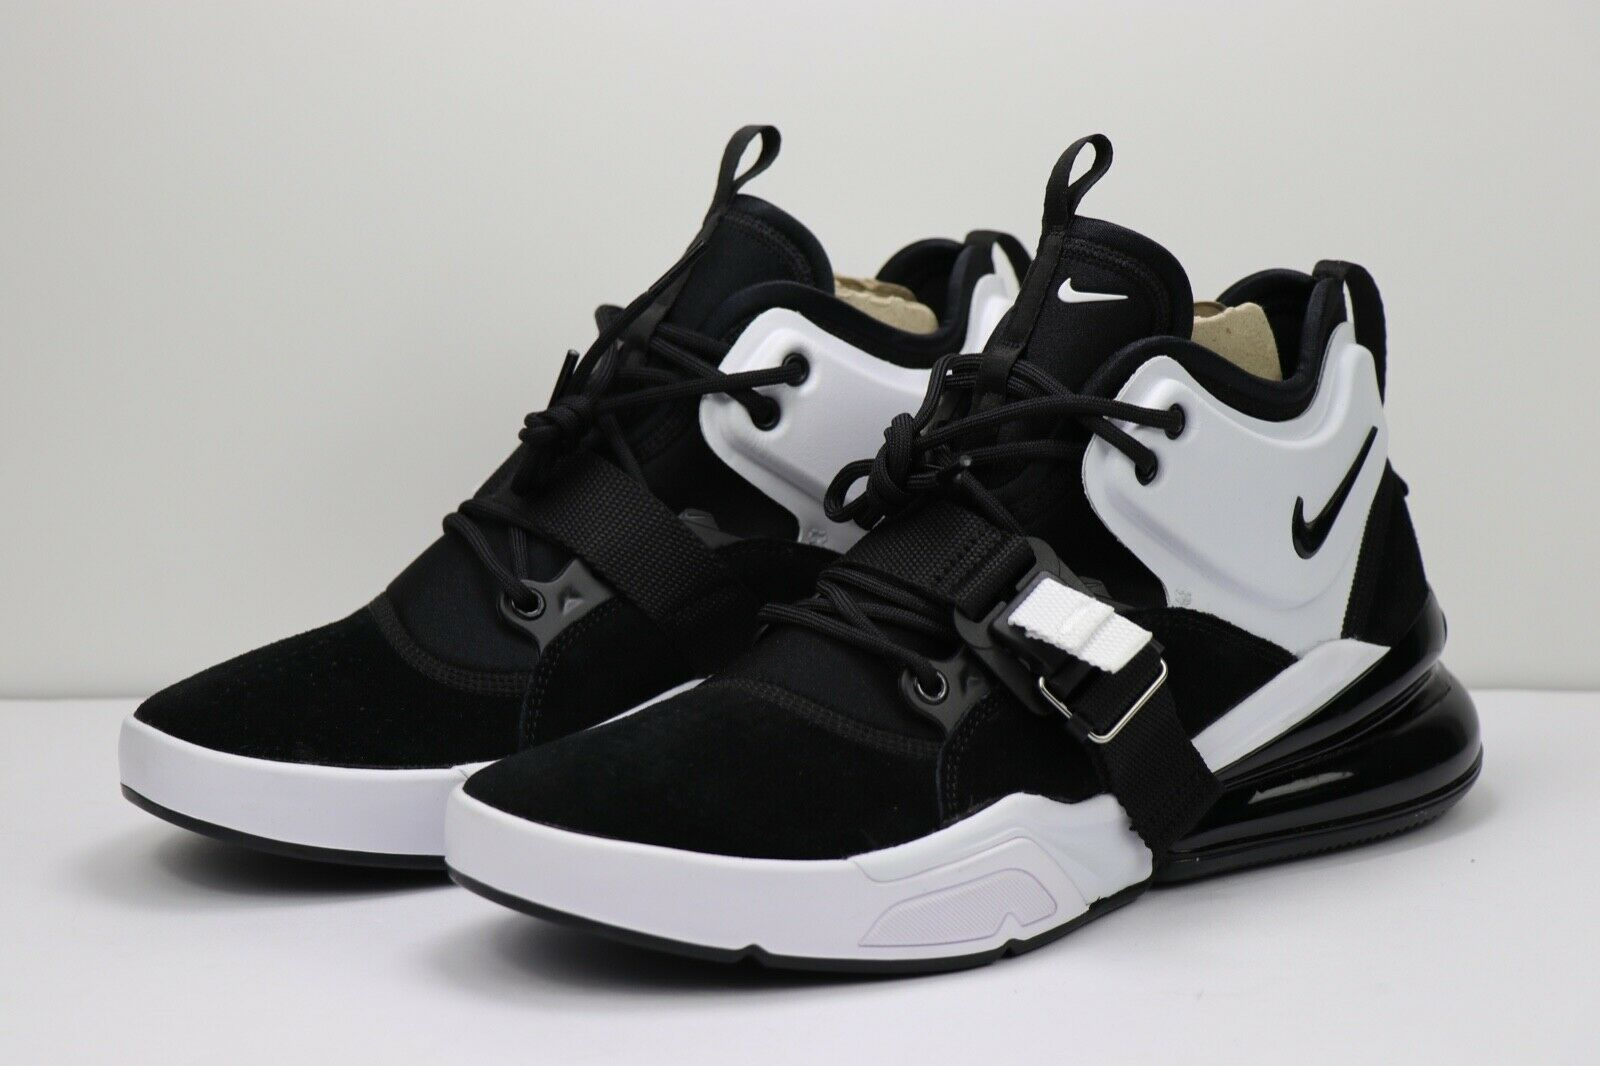 Nike Air Force 270 Black White Oreo Suede Training shoes AH6772-006 Mens Size 8.5